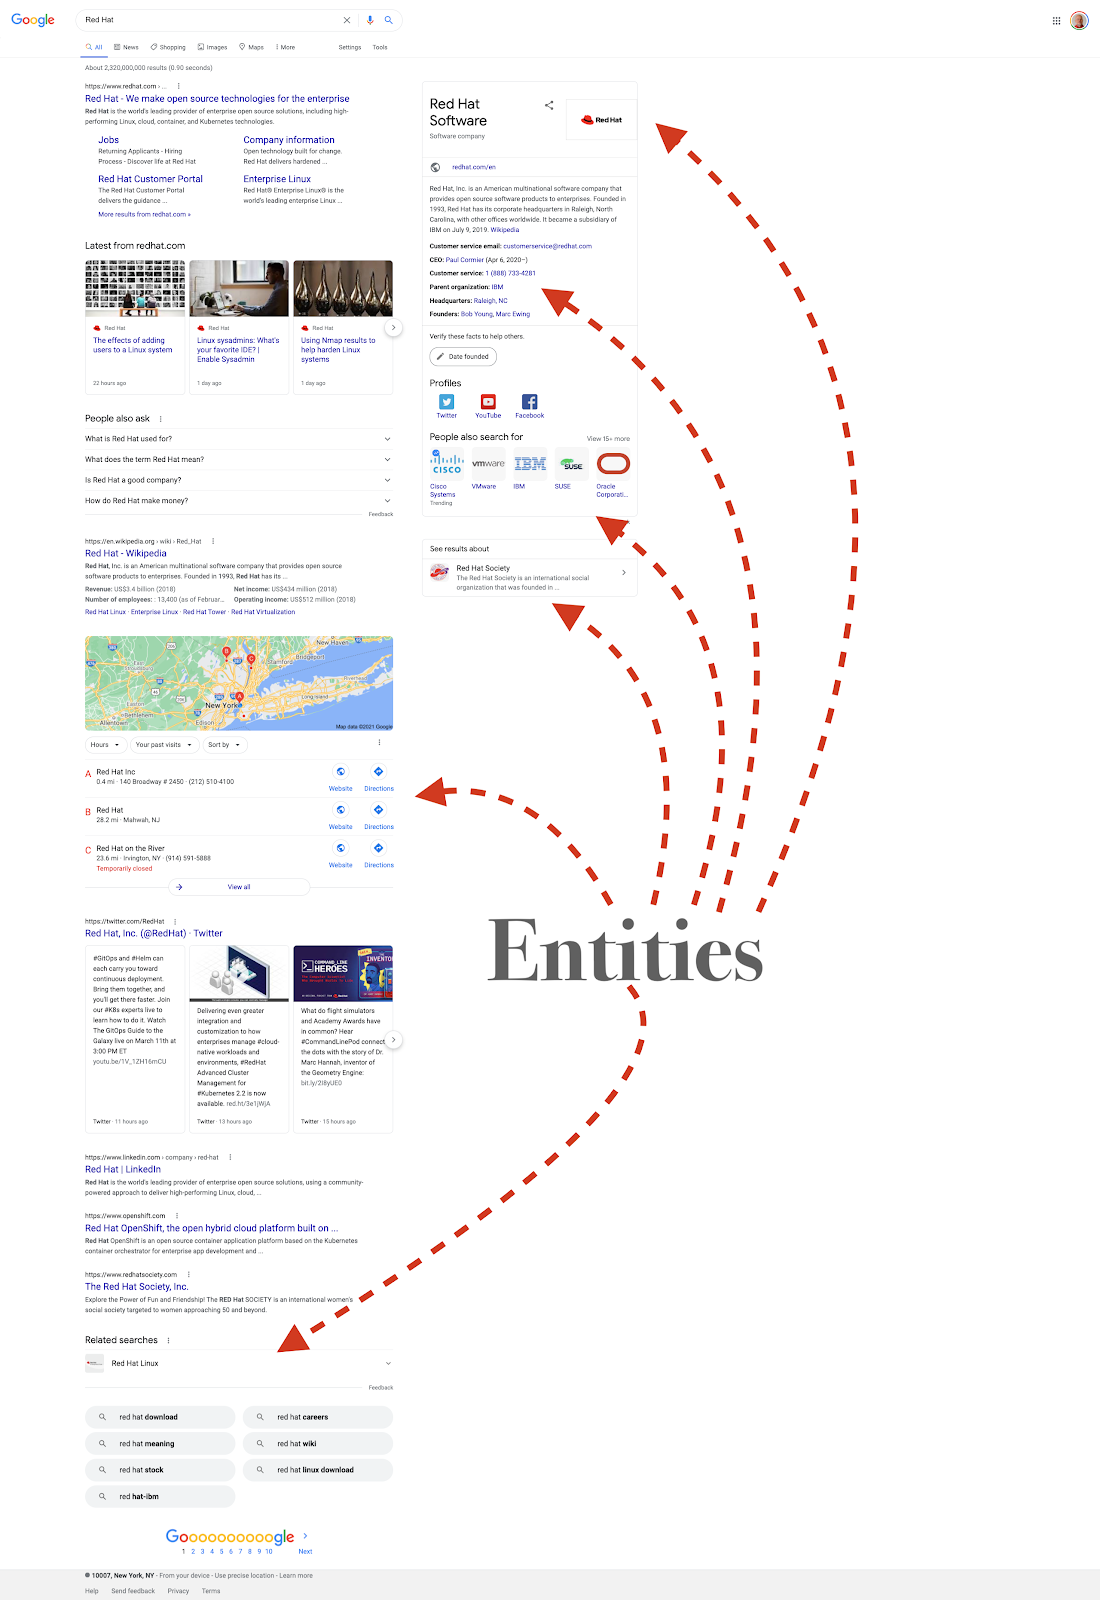 Google SERP showing entities